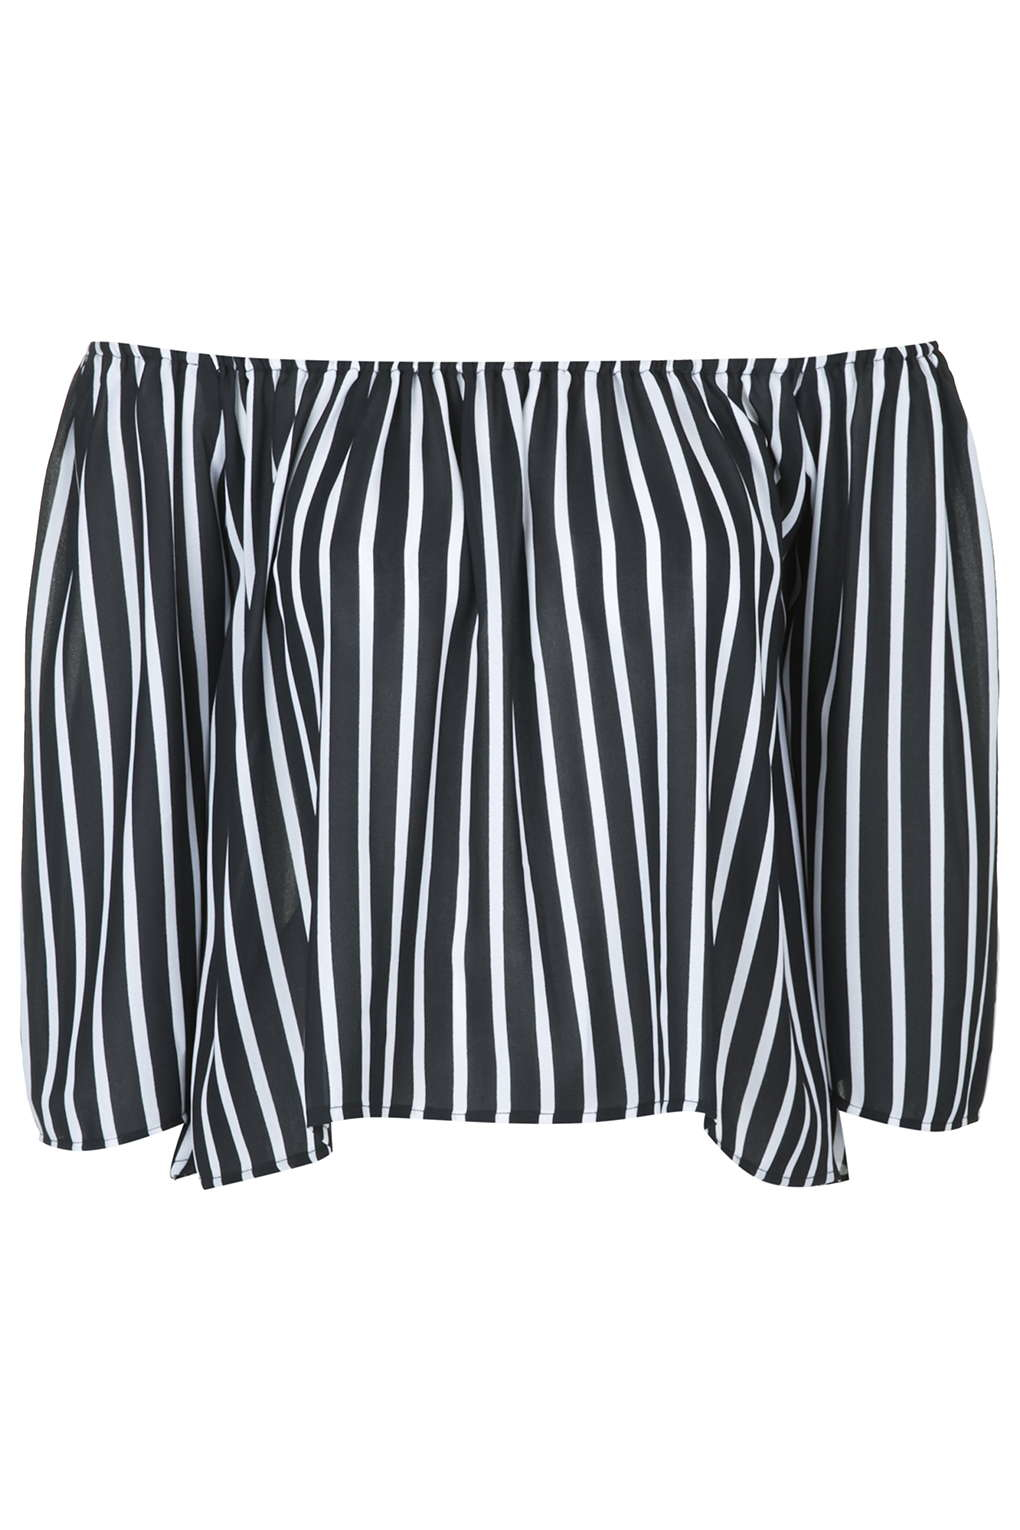 28f9c49749f TOPSHOP Sally Pinstripe Bardot Top By Absence Of Colour in Black - Lyst